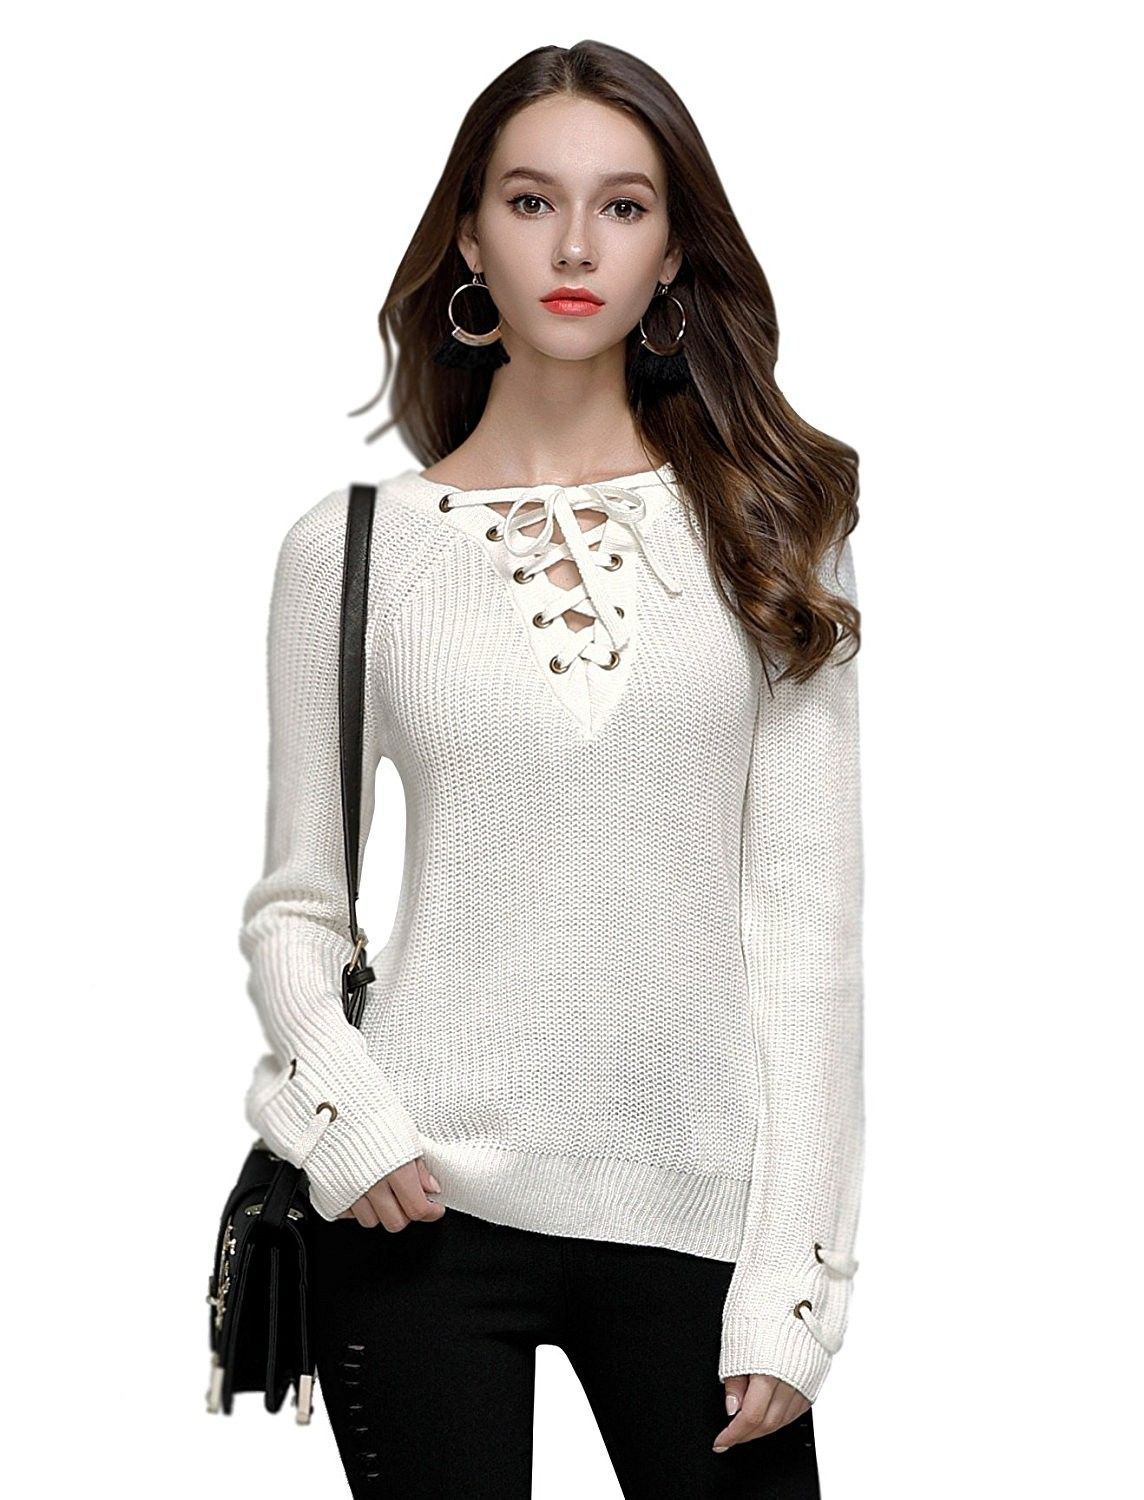 21071bb4375a Women s Lace Up Front V Neck Long Sleeve Knit Pullover Sweater Top - White  - C9185GKDDMX